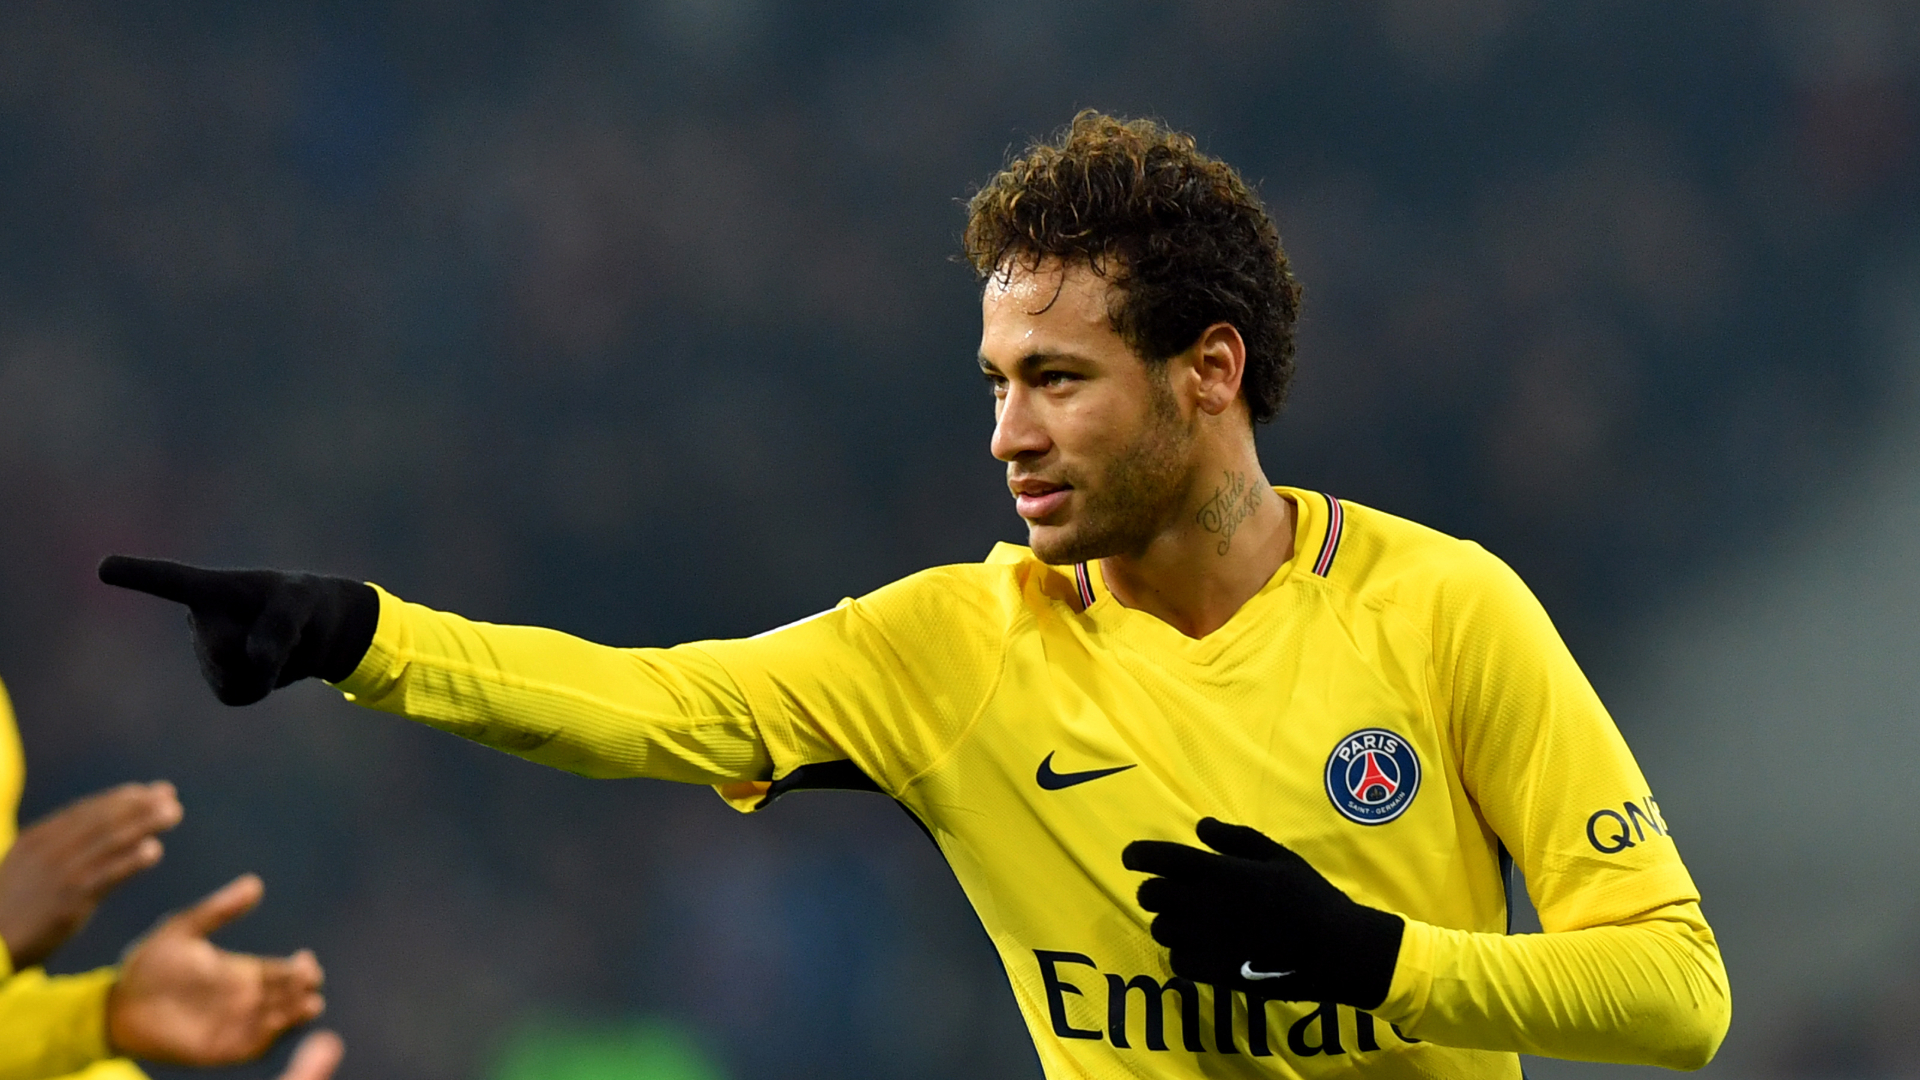 Transfer: Barcelona offer player, cash to PSG for Neymar